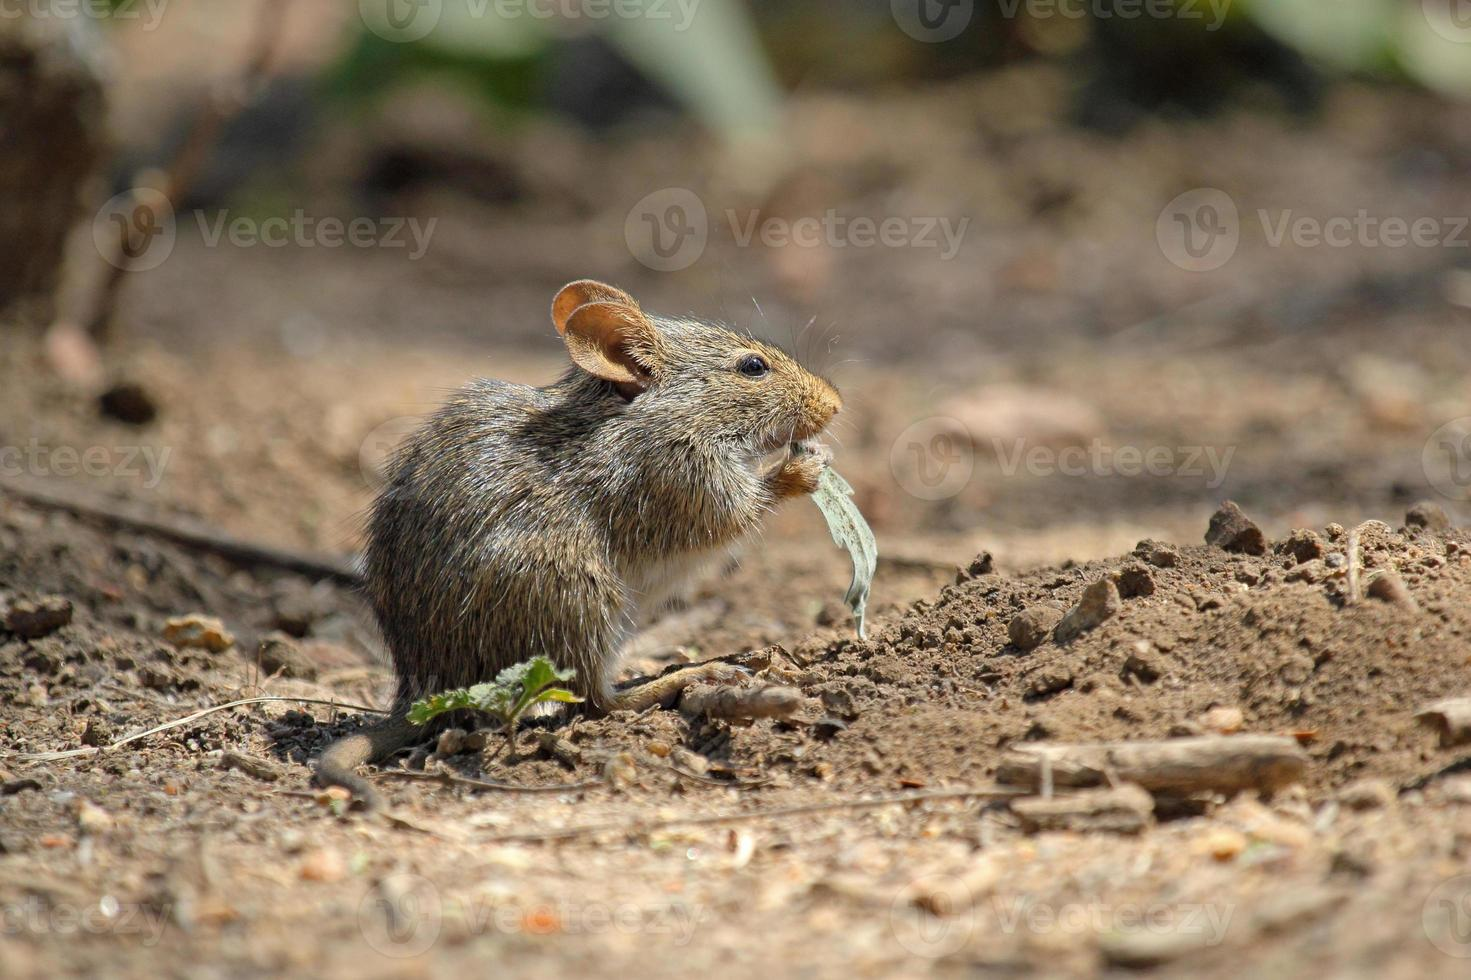 Field mouse eating a leaf photo